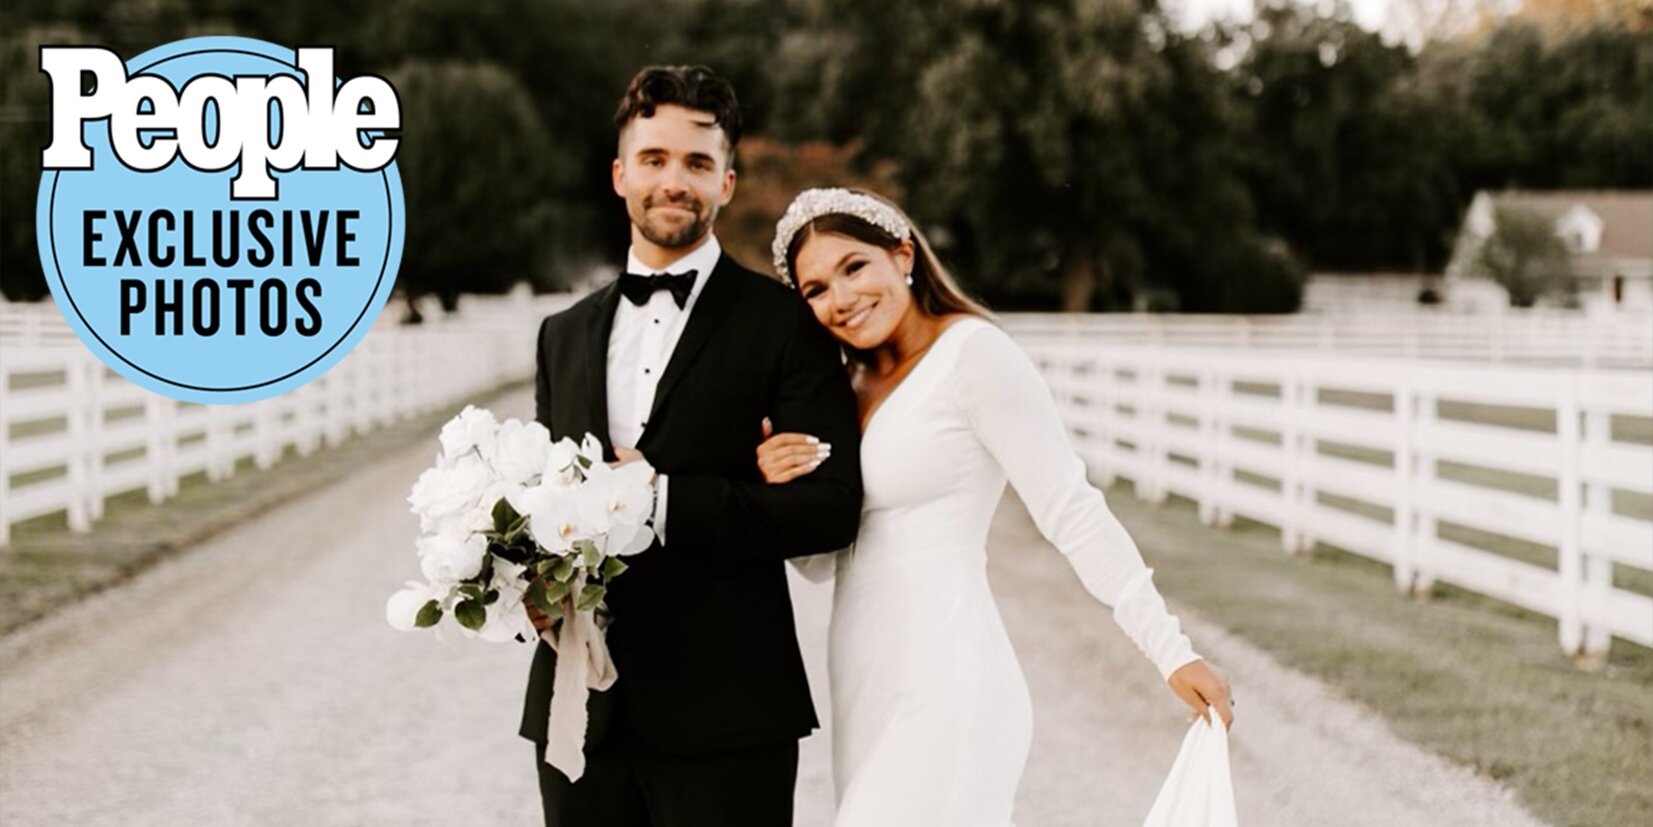 Abby Anderson Marries Tyler Graham in 'Special' Tenn. Wedding: 'So Excited to Start Life Together'.jpg